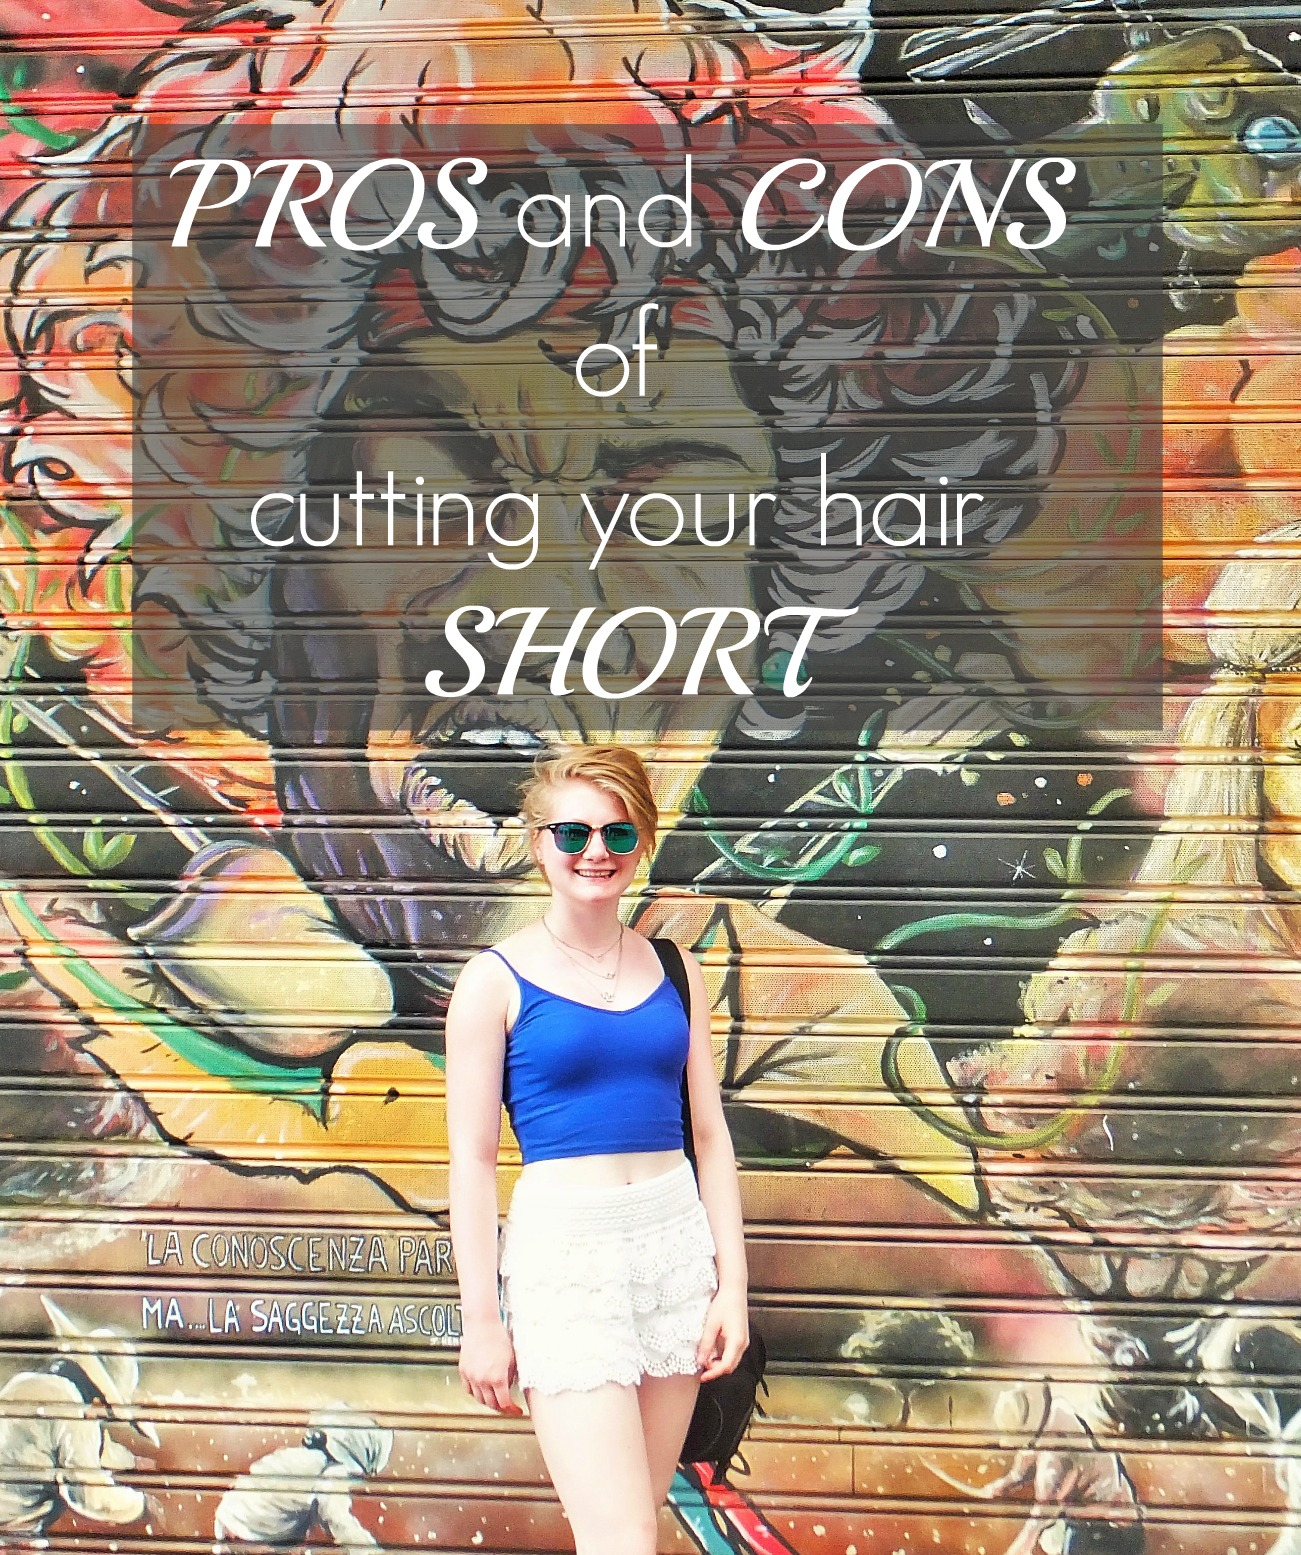 Bell Santiago: Pros and cons of cutting your hair short